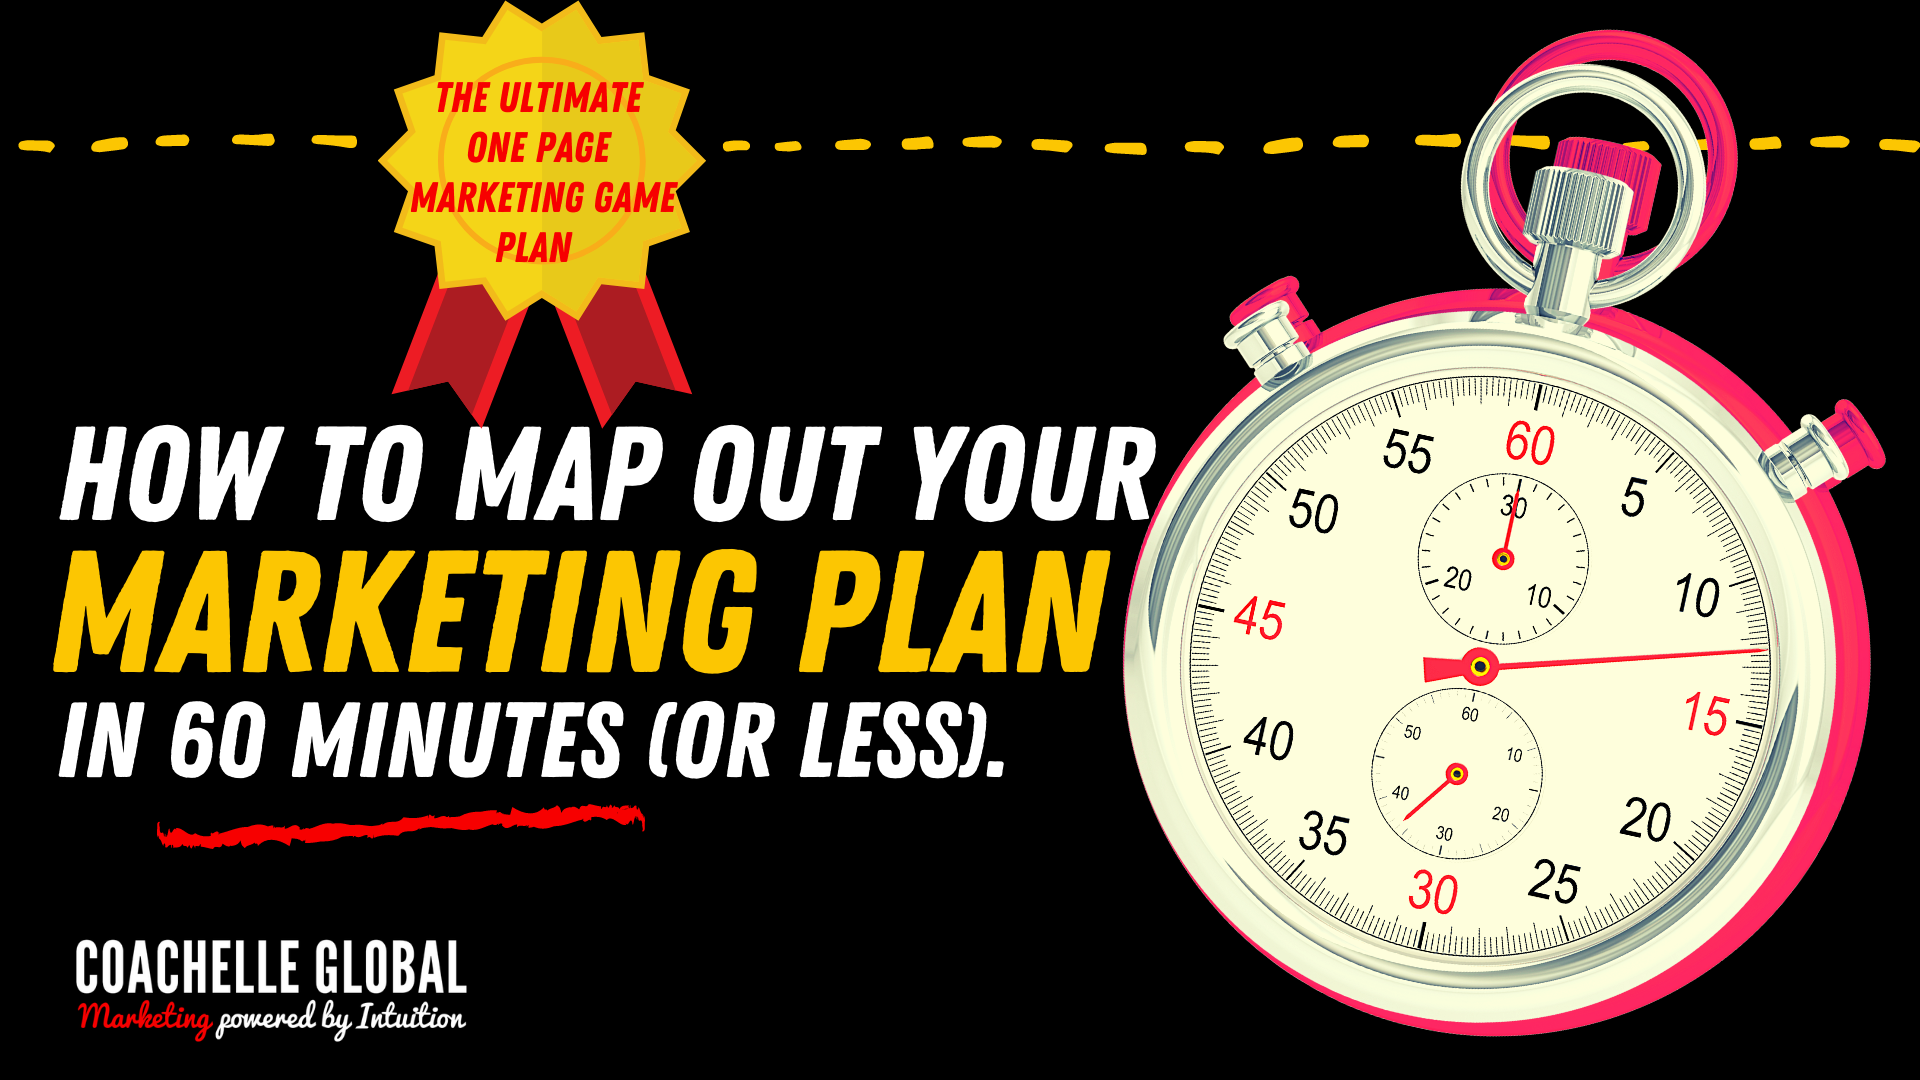 The Ultimate One Page Marketing Game Plan Guide (19)